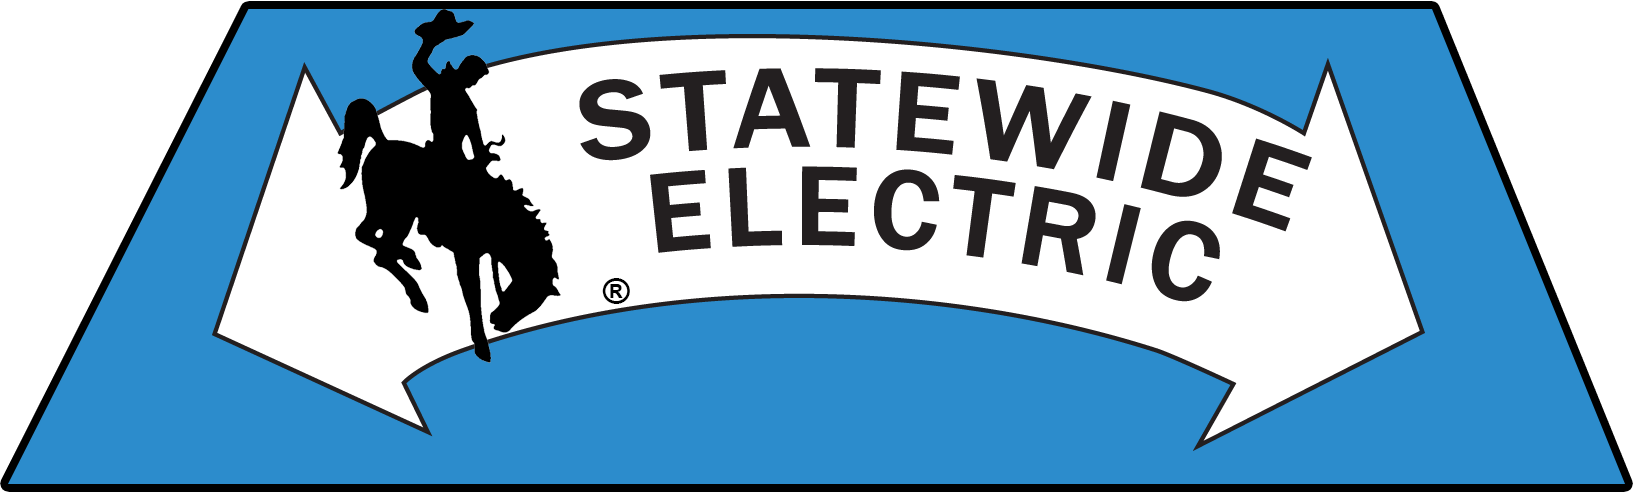 Statewide Electric